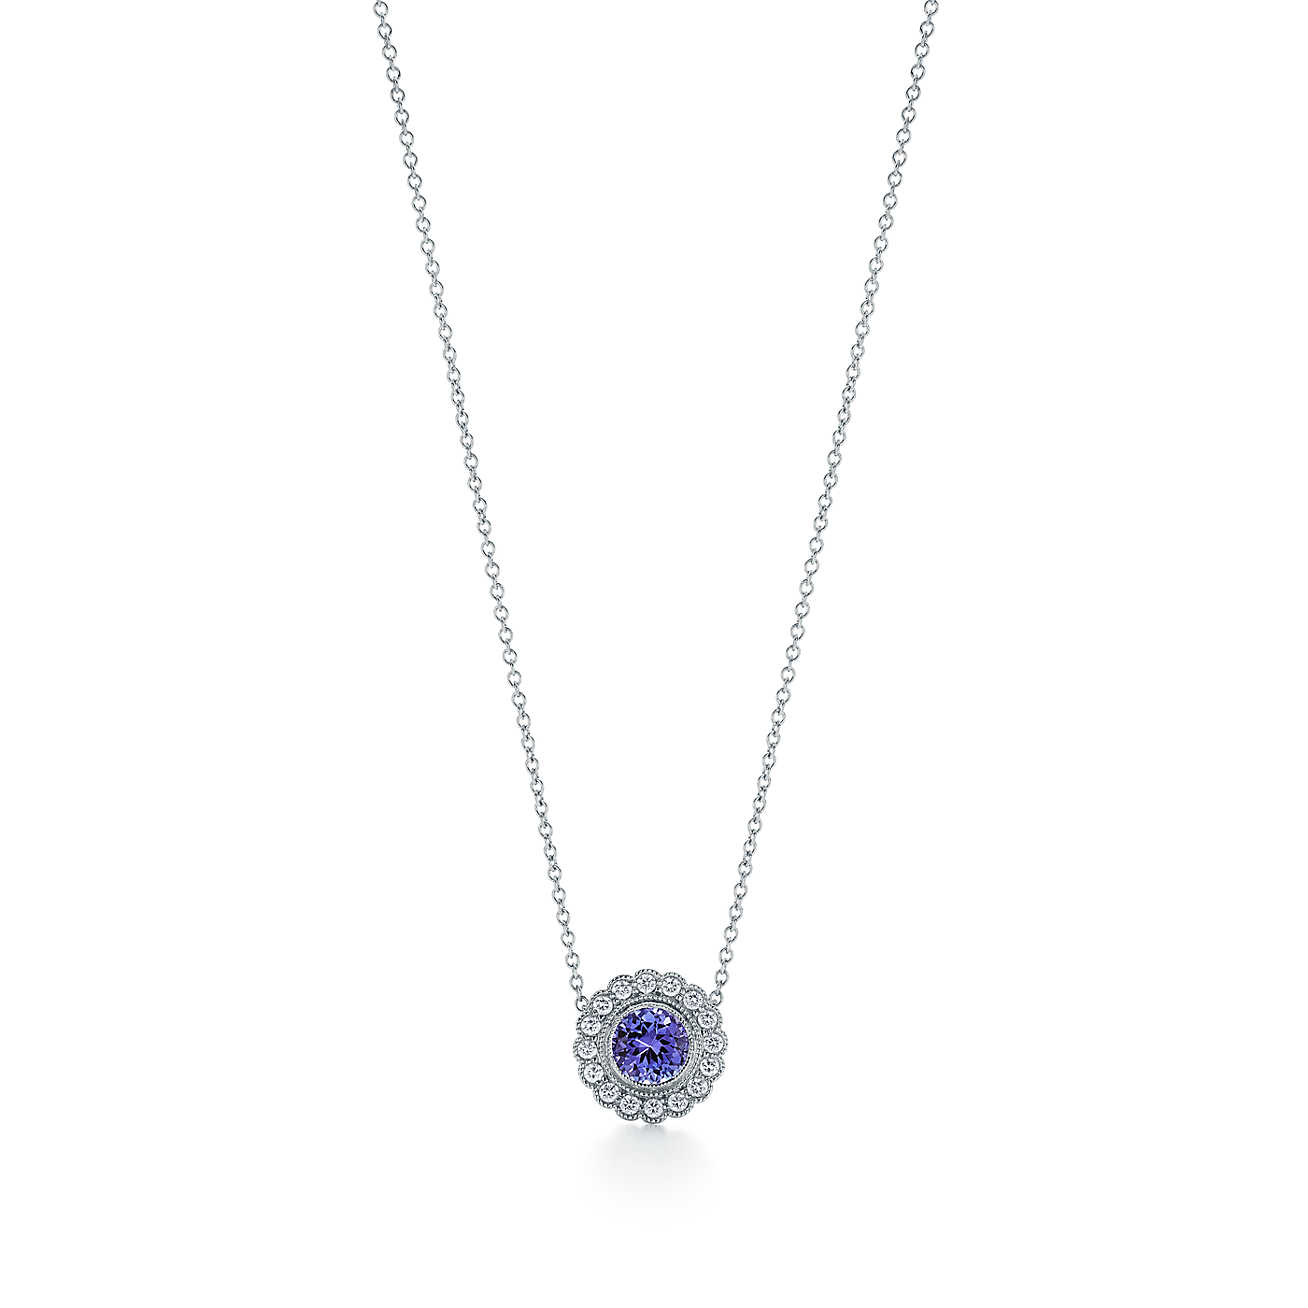 tiffany-enchanttanzanite-pendant-35809732_959817_ED